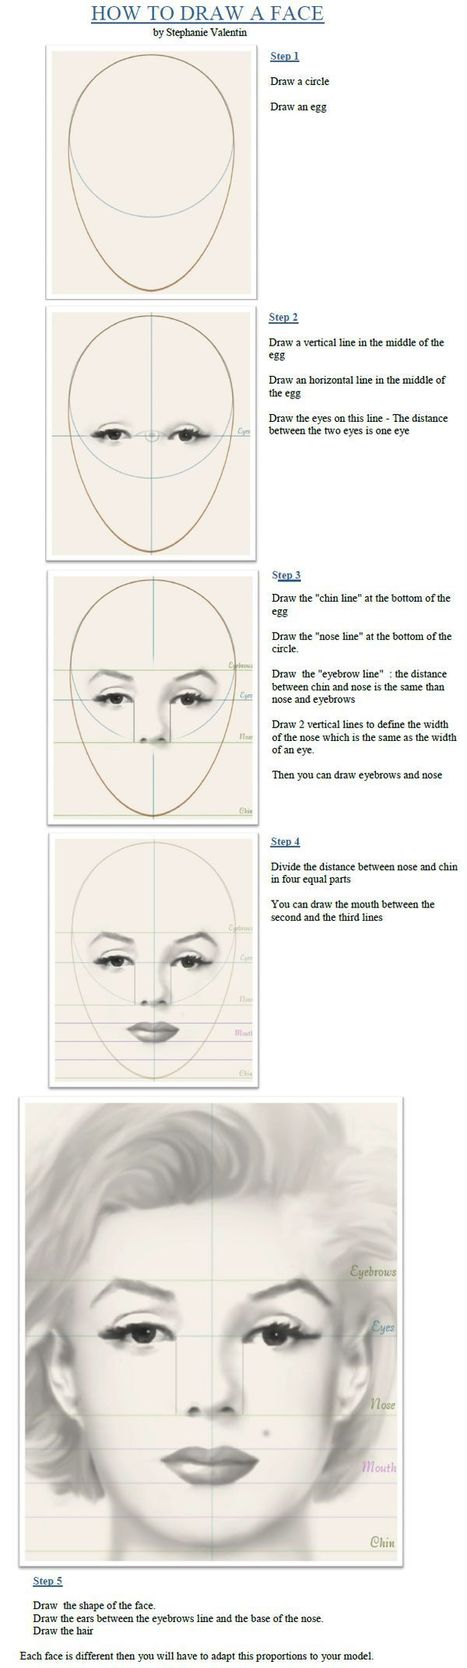 Face Drawing Reference Guide | Drawing References and Resources | Scoop.it